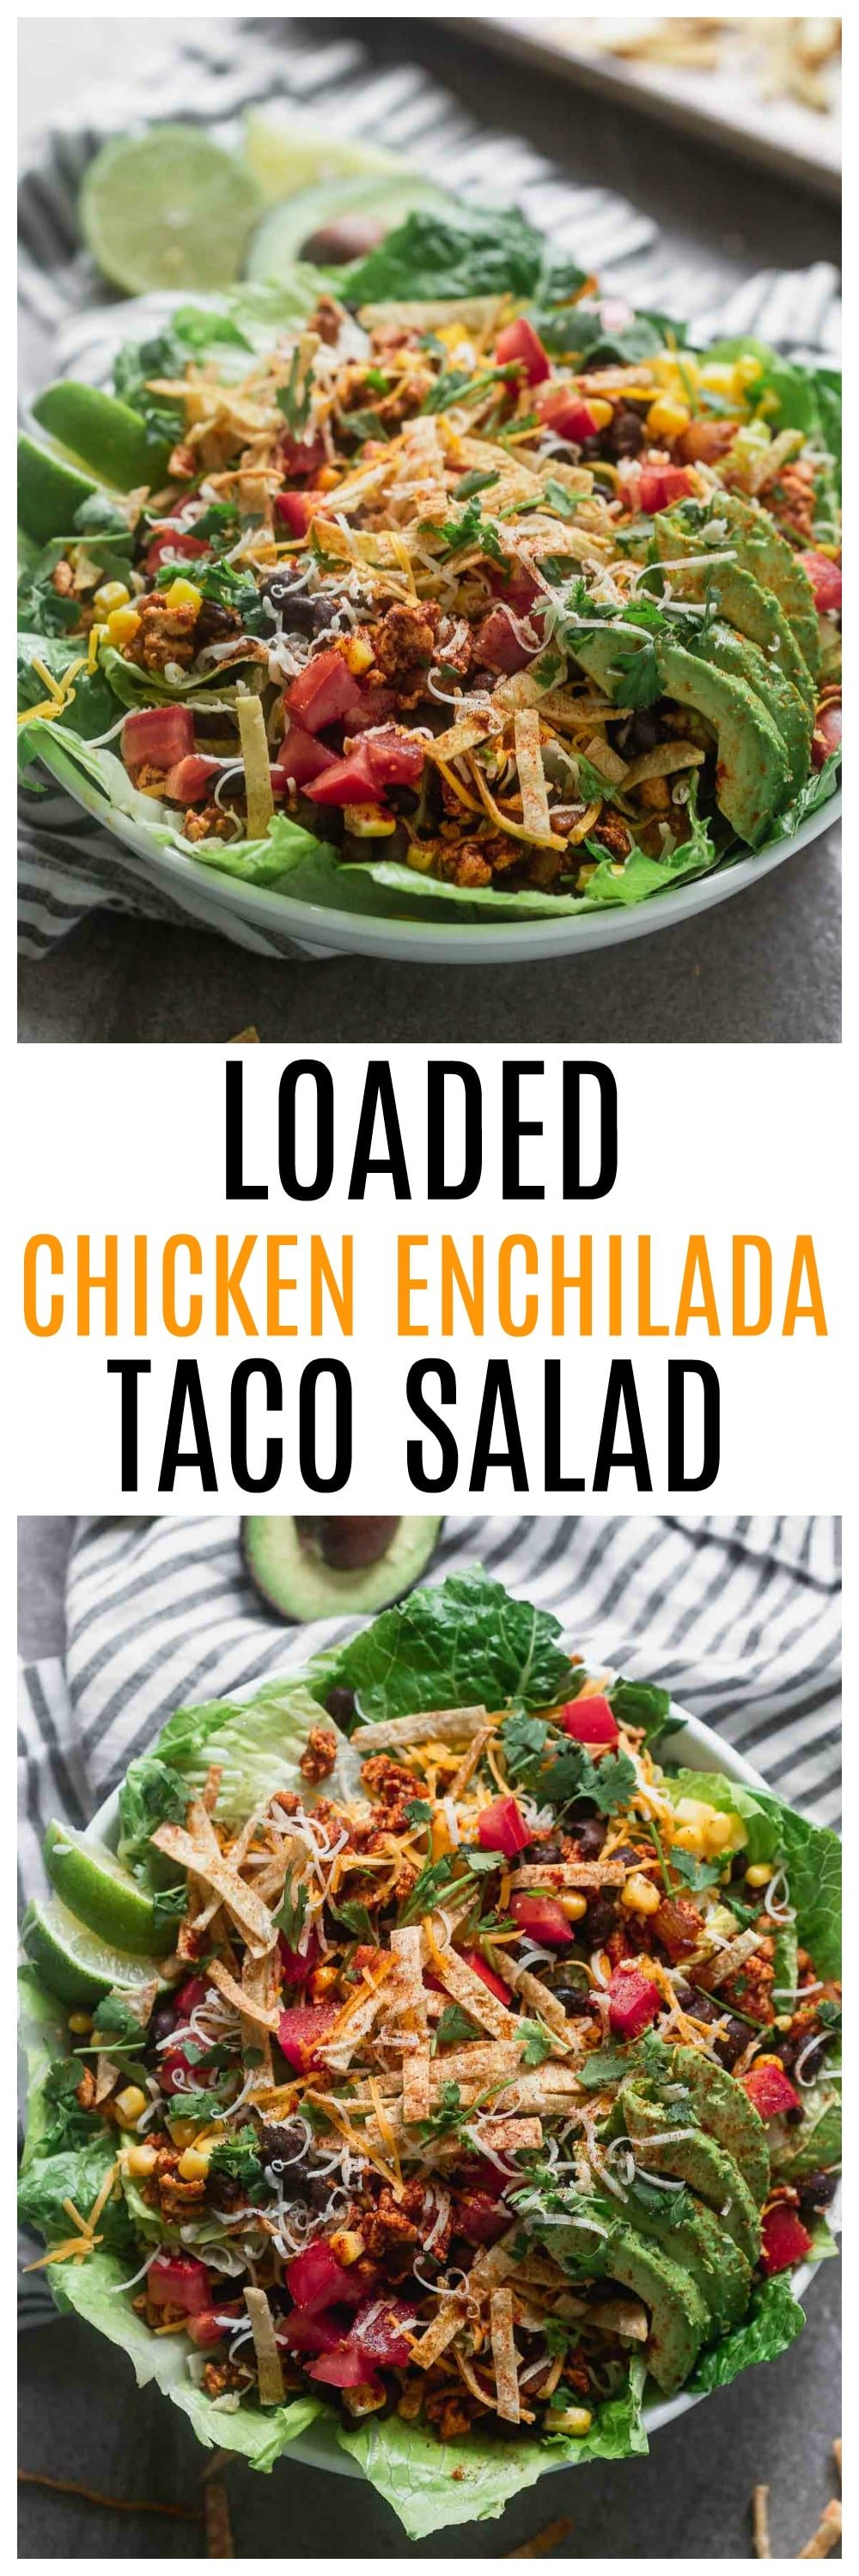 Chicken Enchilada Taco Salad